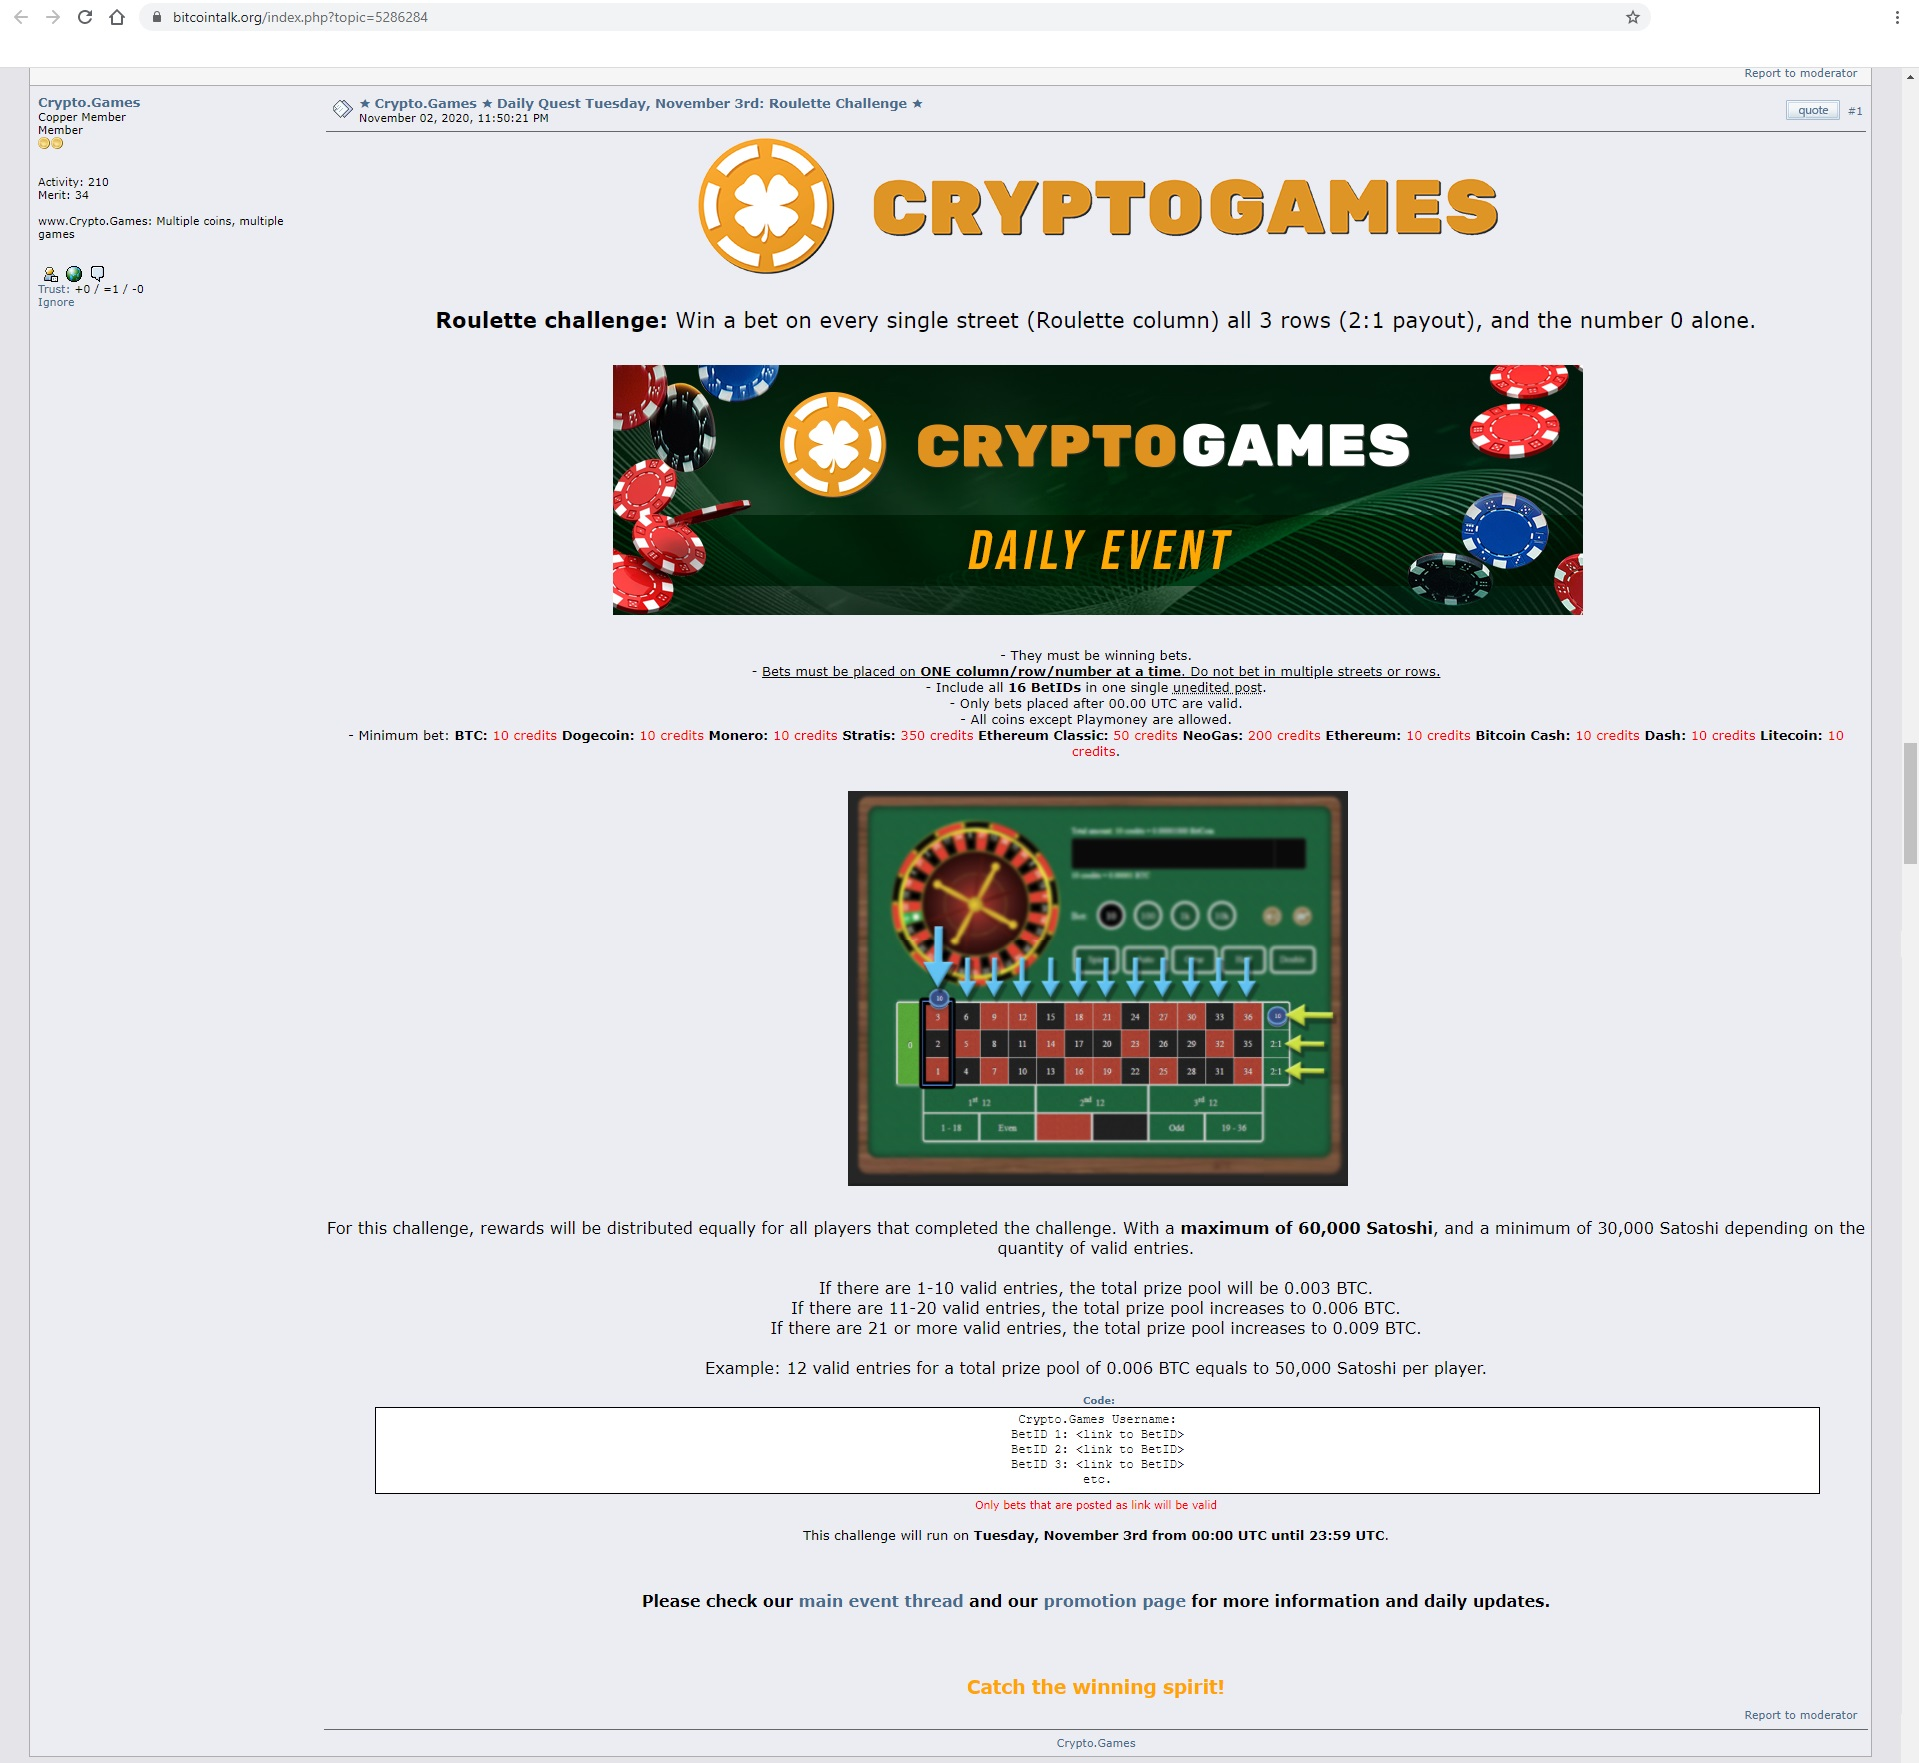 Crypto.Games promotions on forum